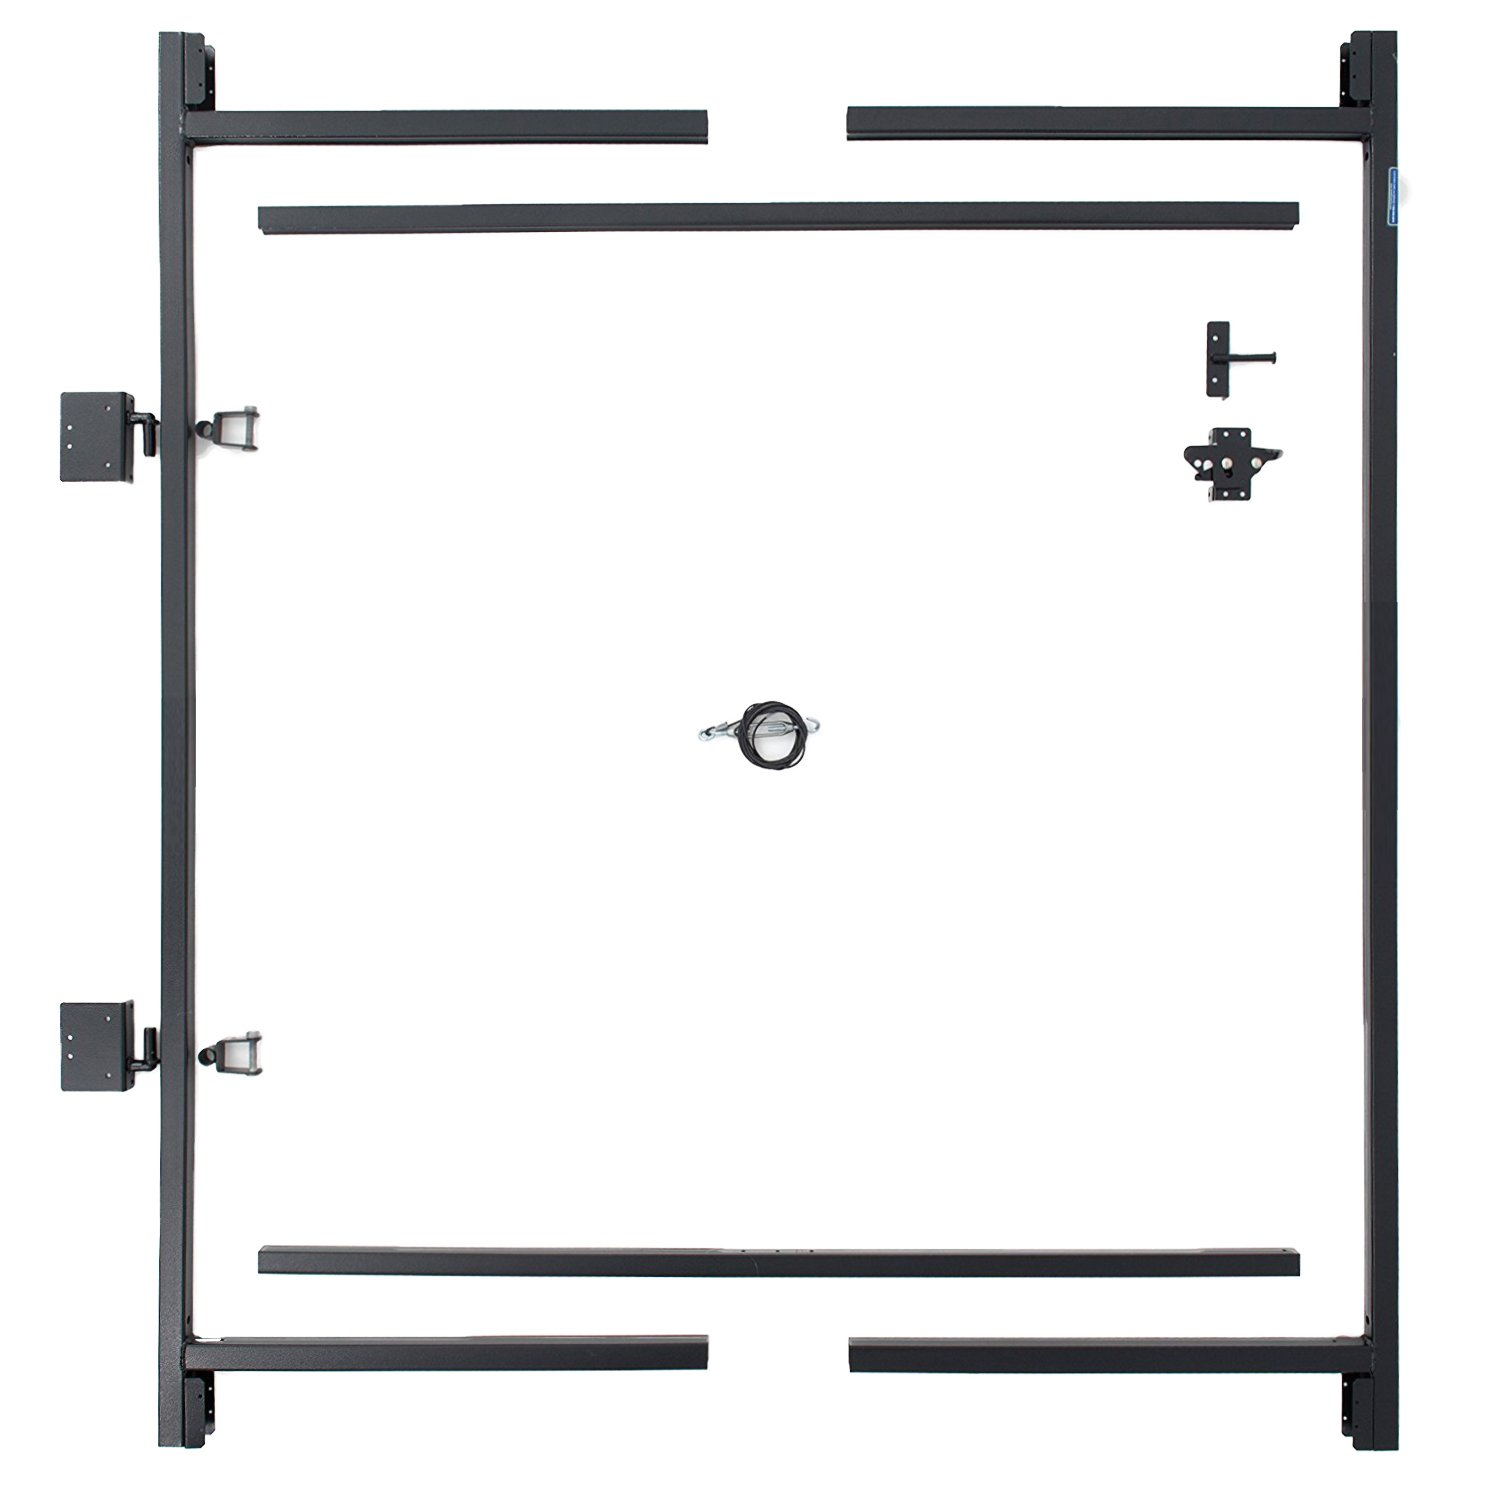 Adjust-A-Gate Steel Frame Gate Building Kit (60''-96'' wide openings up to 5' high fence)